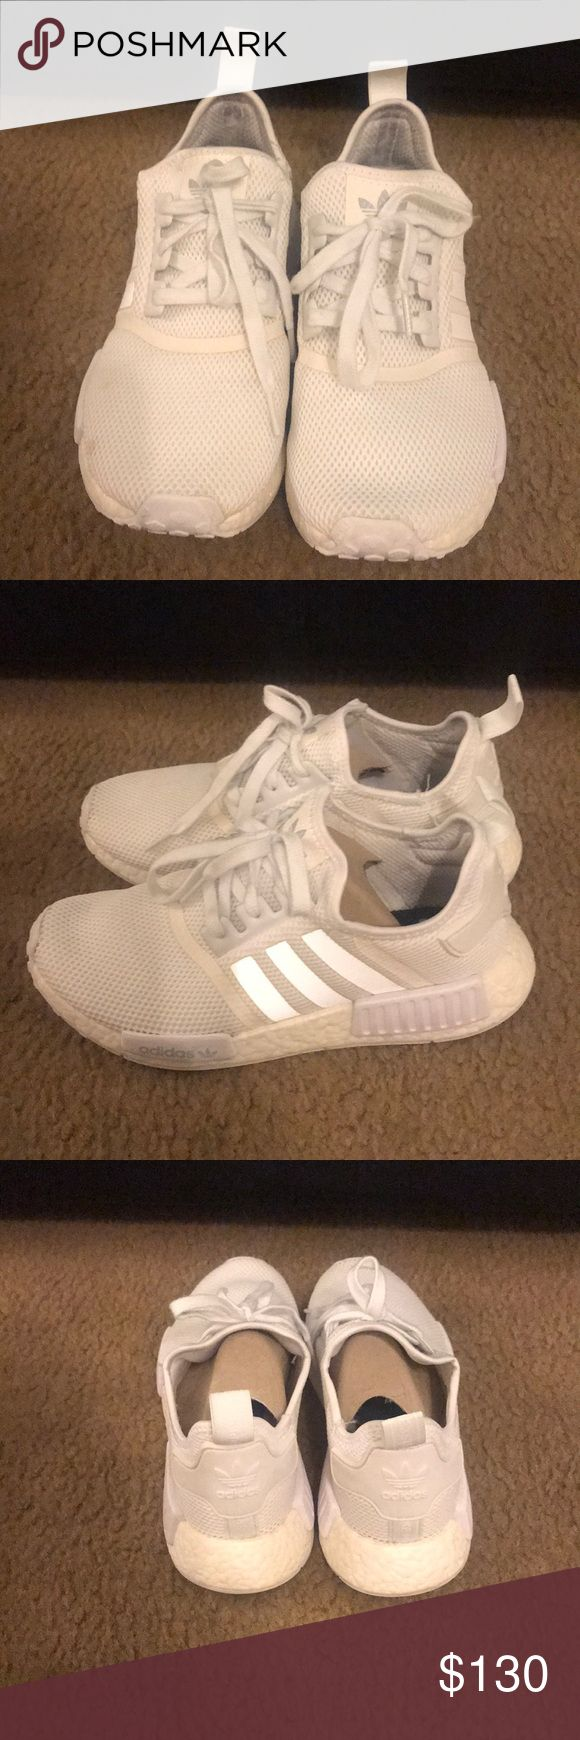 Adidas NMD R1 triple white 8.5 original box inc. Adidas NMD R1 triple white 8.5 original box inc. S79166 You can still buy these new for $230 online in lucky situations and certain sizes. These have been worn about a dozen times max. Good condition. Cardboard inserts included in box. Well taken care of. adidas Shoes Sneakers